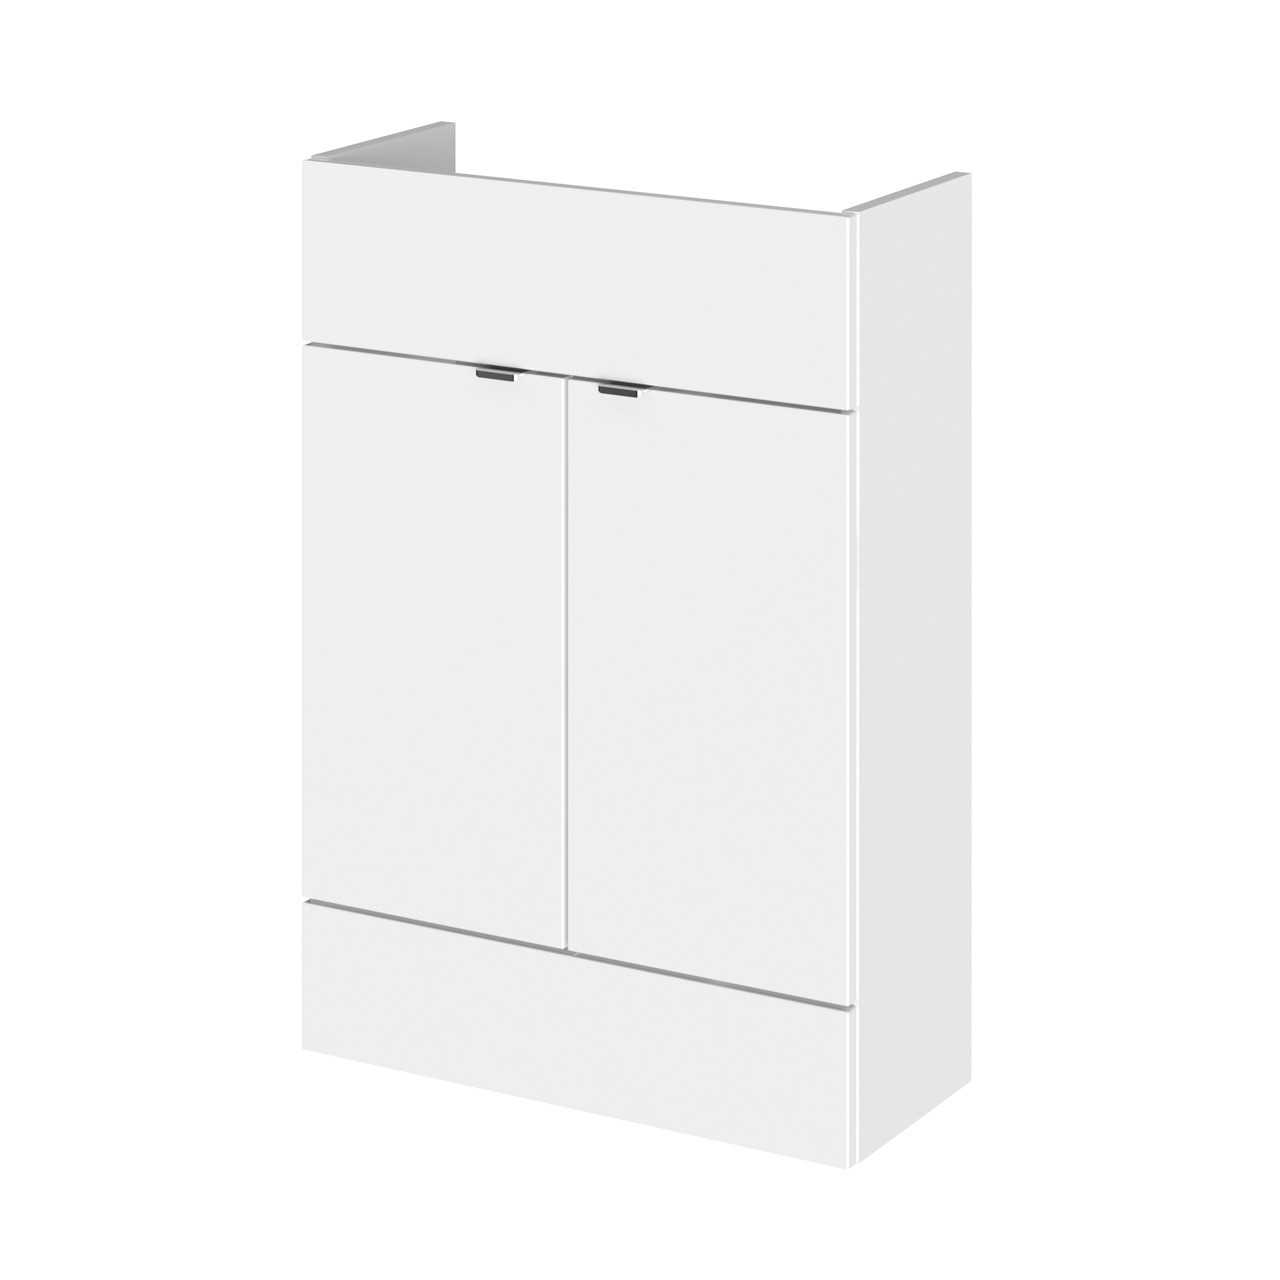 Hudson Reed 600 Vanity Unit 864mm x 600mm x 235mm - OFF107